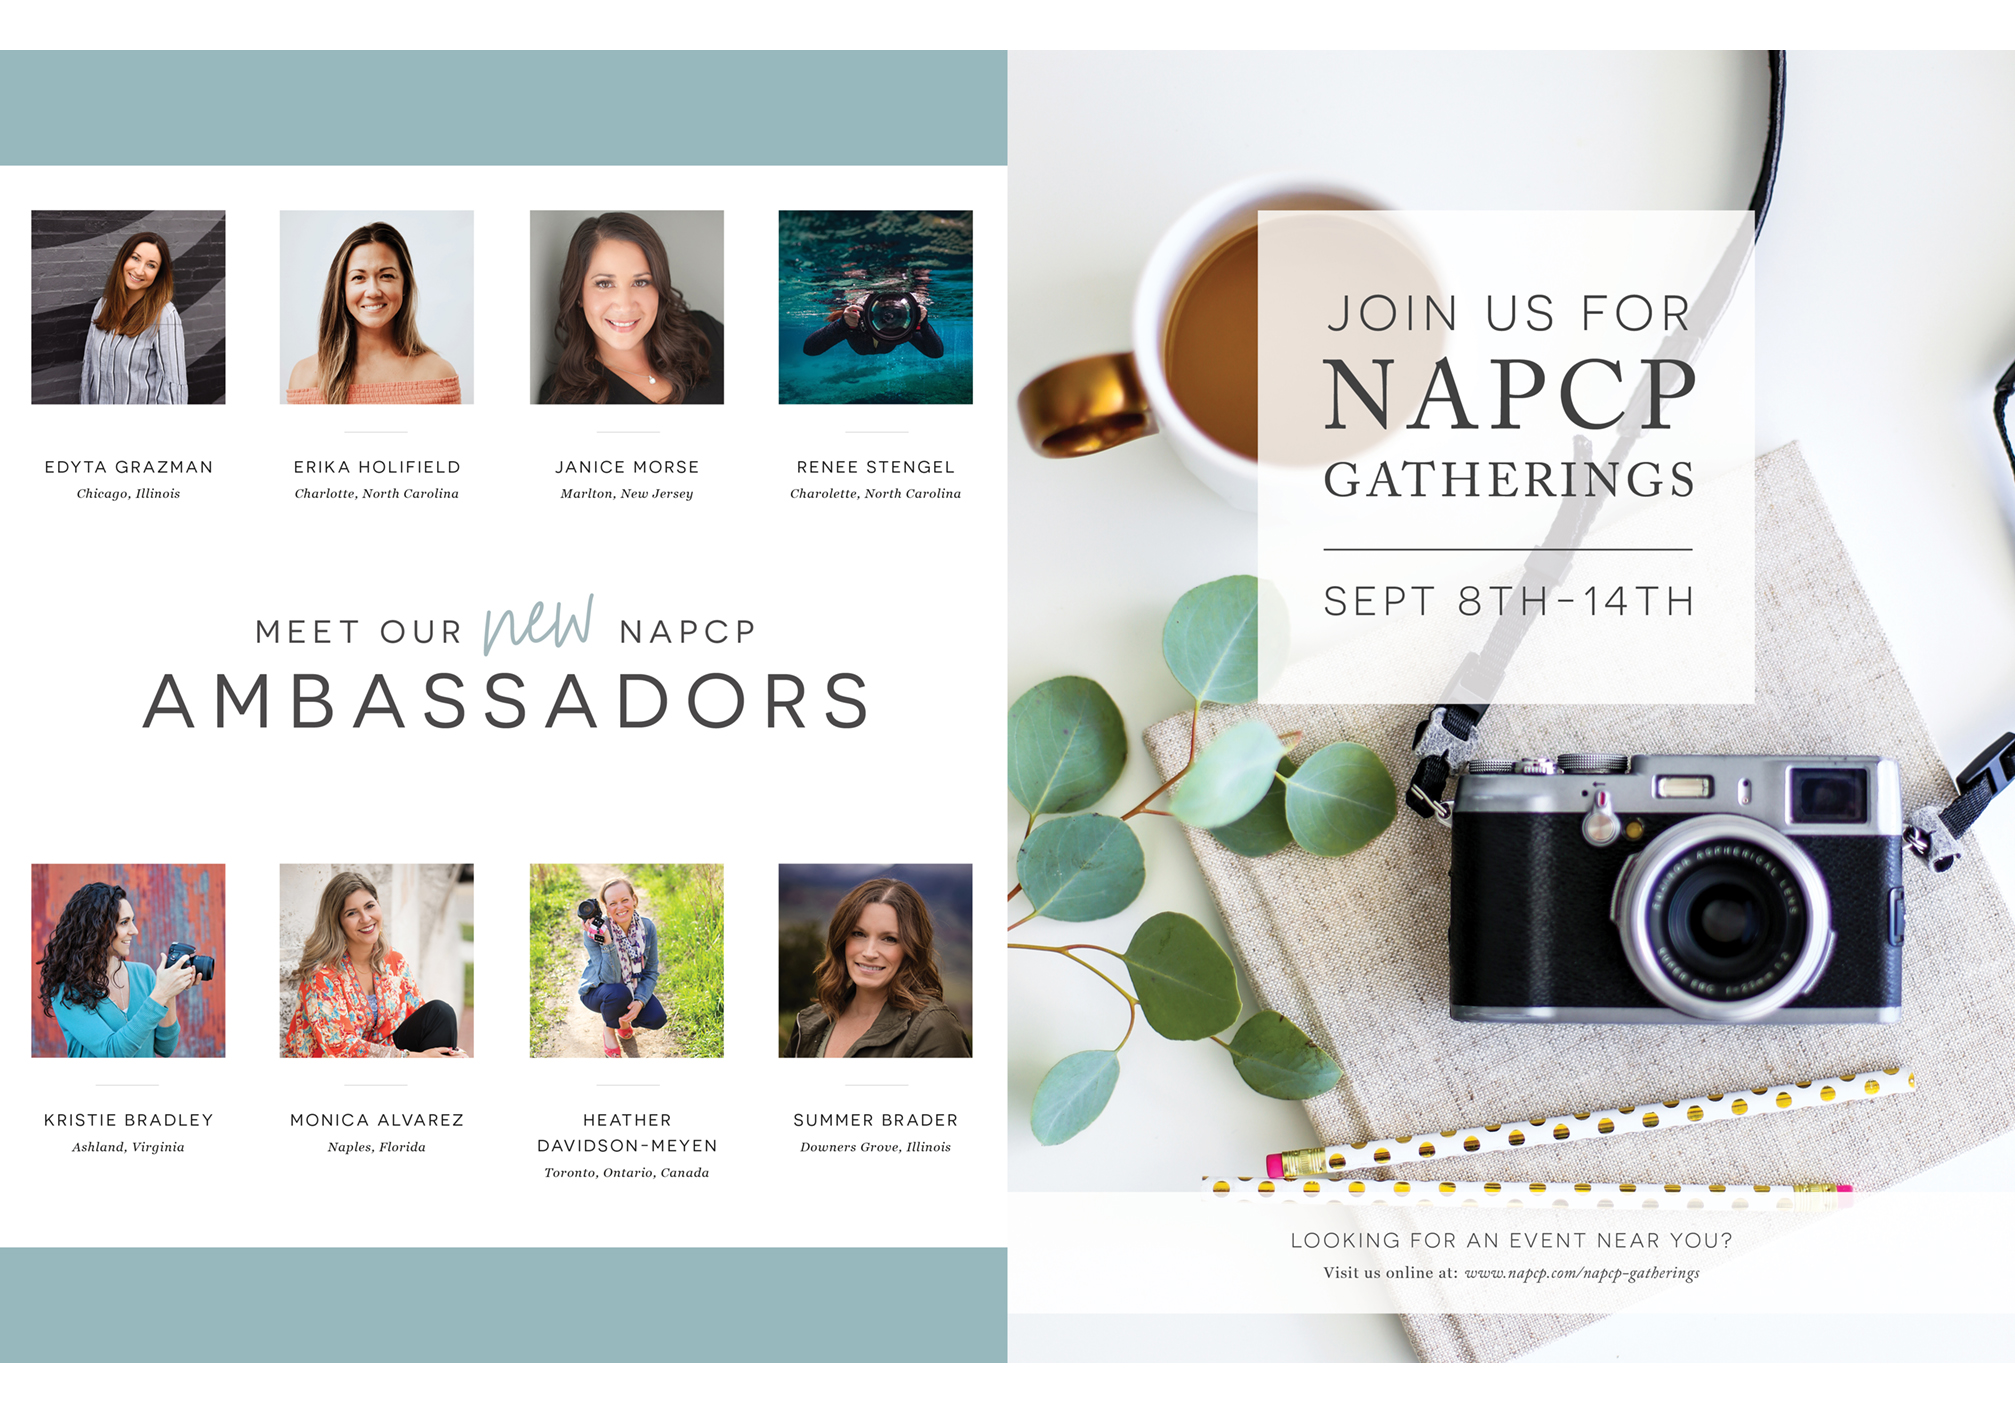 Inspired Magazine, Meet Our New NAPCP Ambassadors